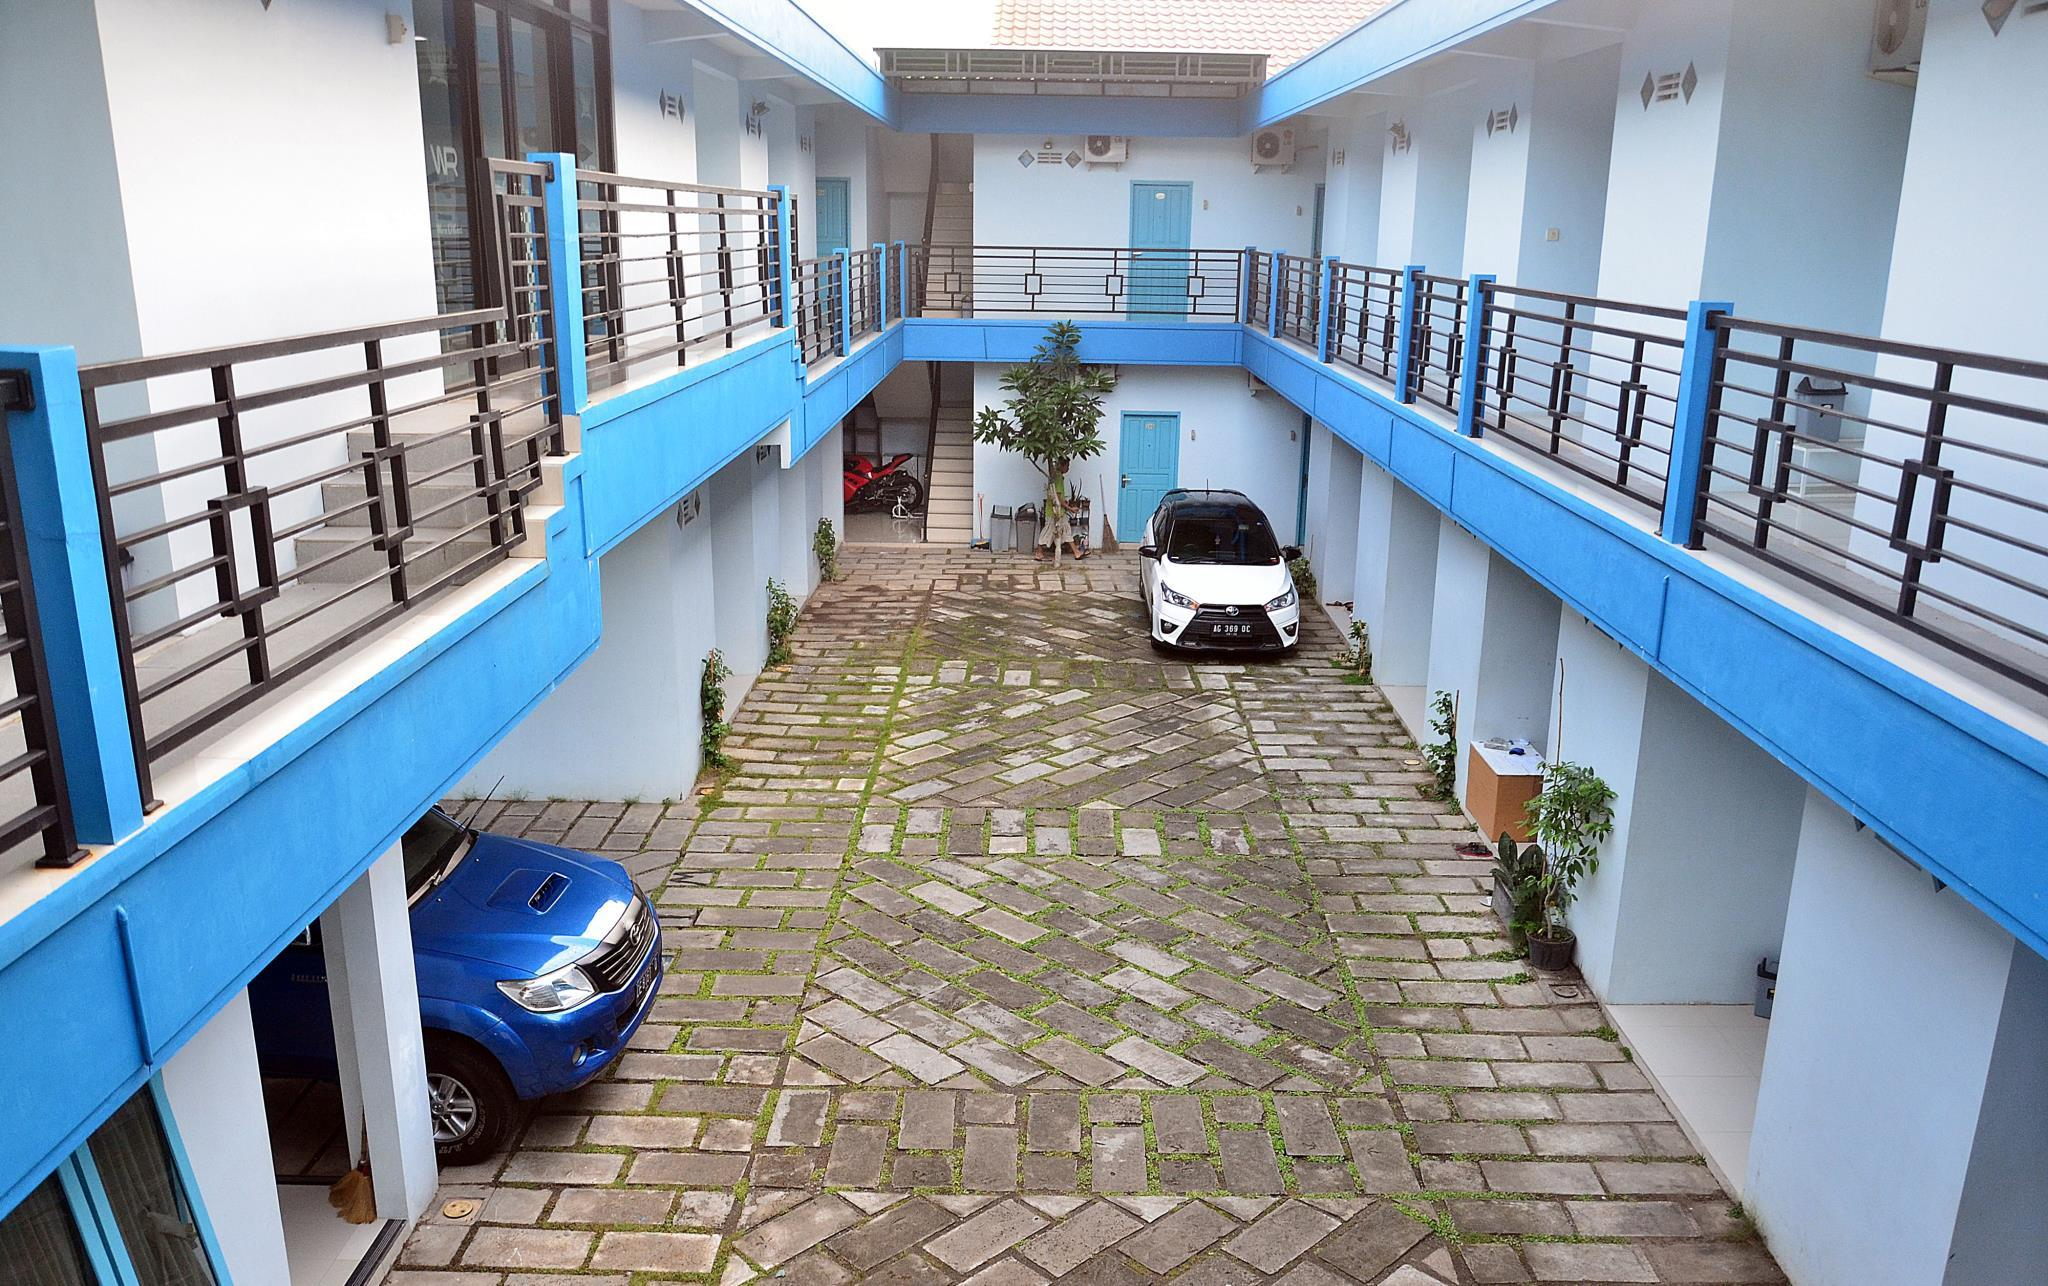 Wira DKost n Guest House, Madiun